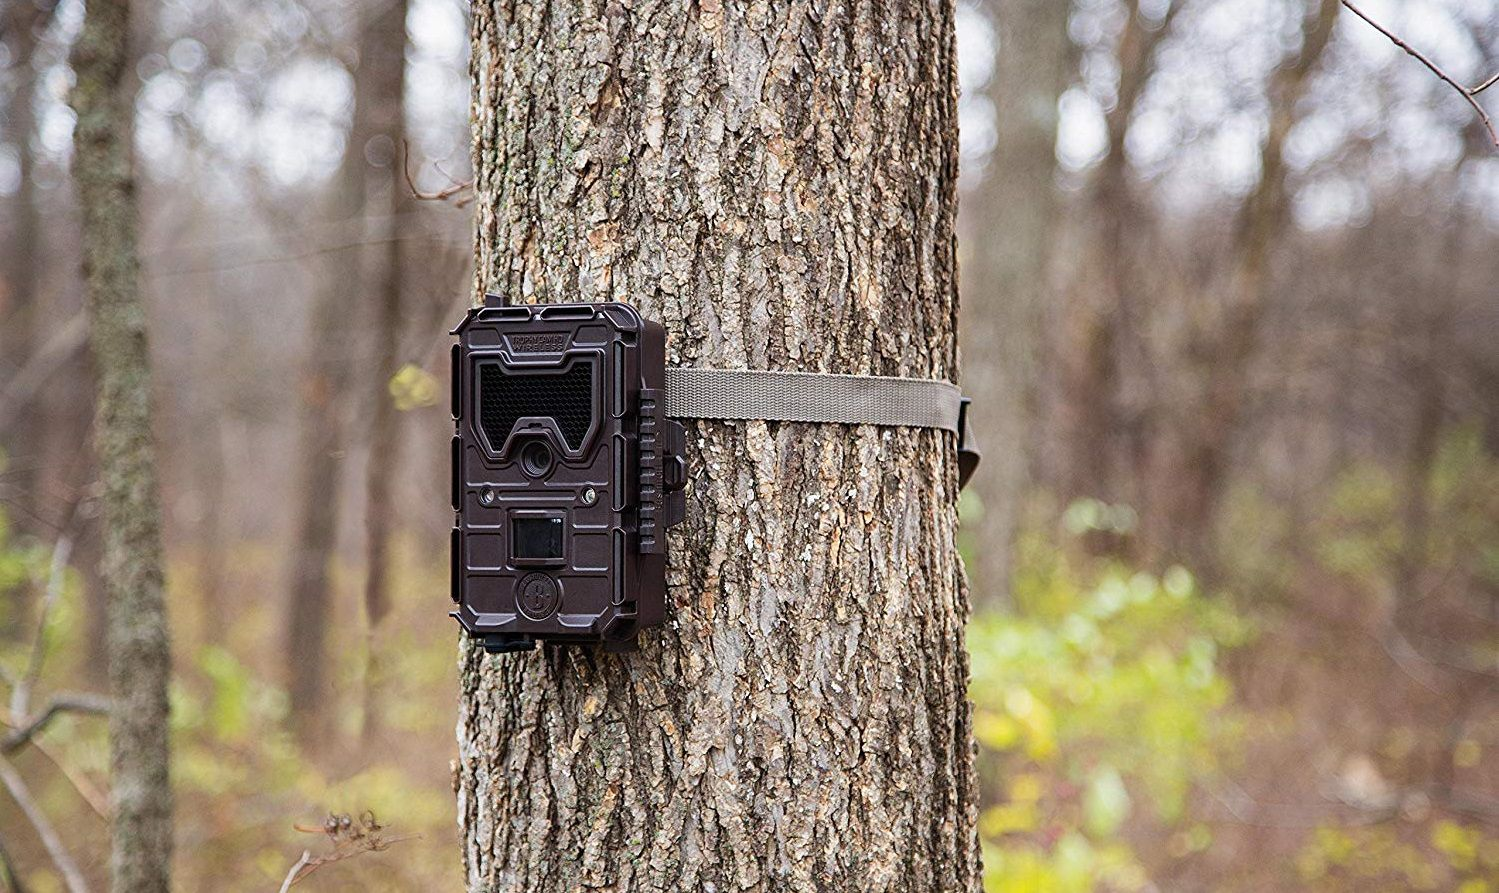 Bushnell 119599C2 Trophy Wireless Trail Camera